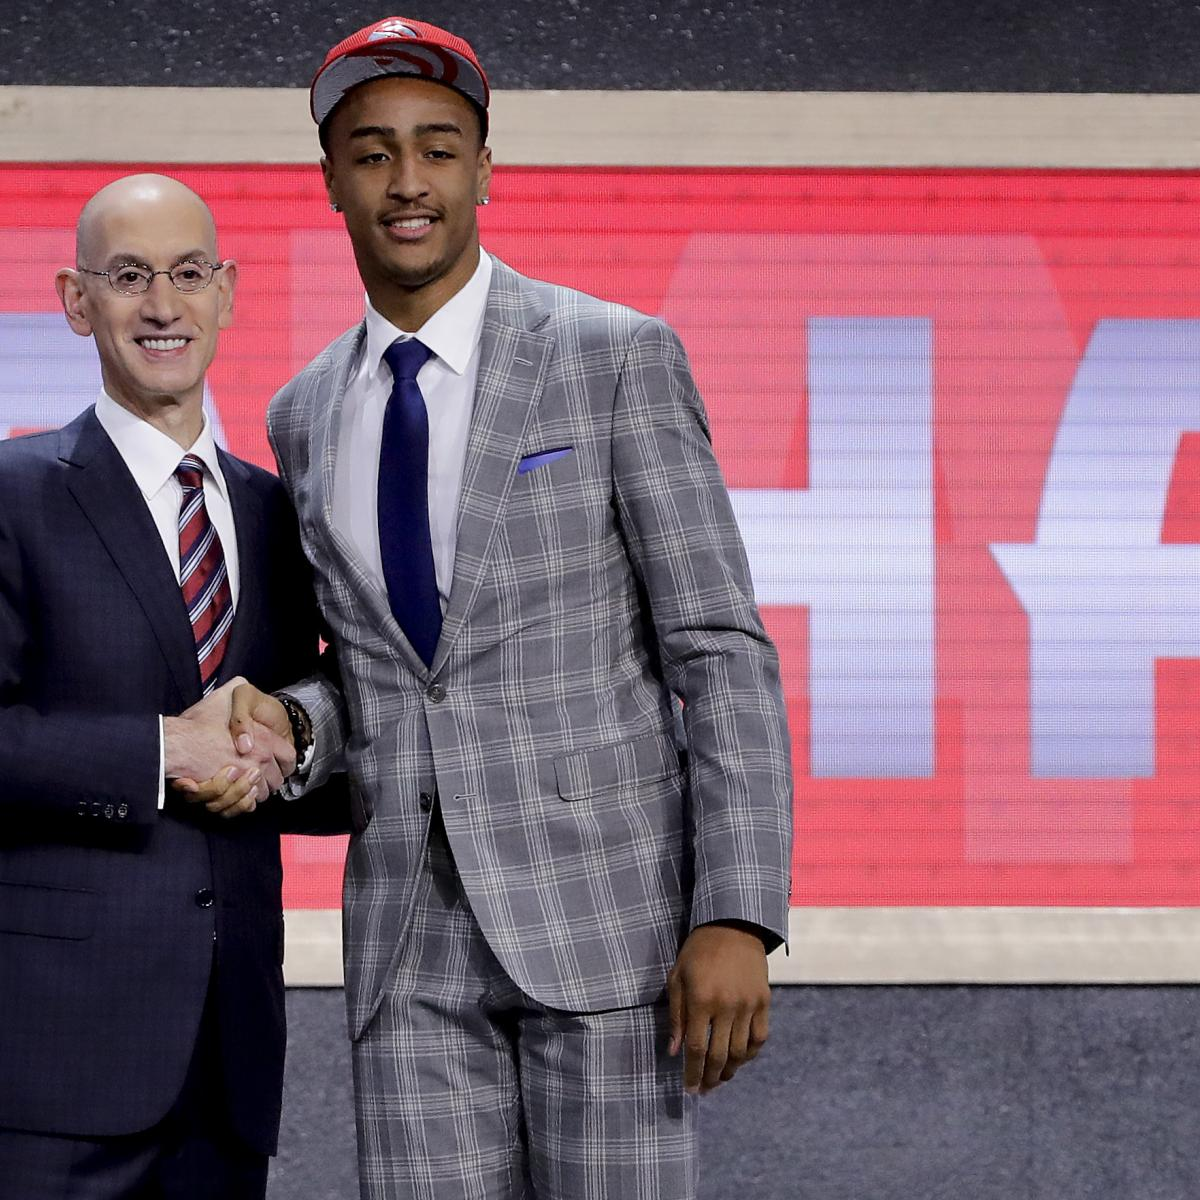 T Of C Alums 2017 Nba Draft: NBA Draft Grades 2017: Scores For Overall Results, Trades